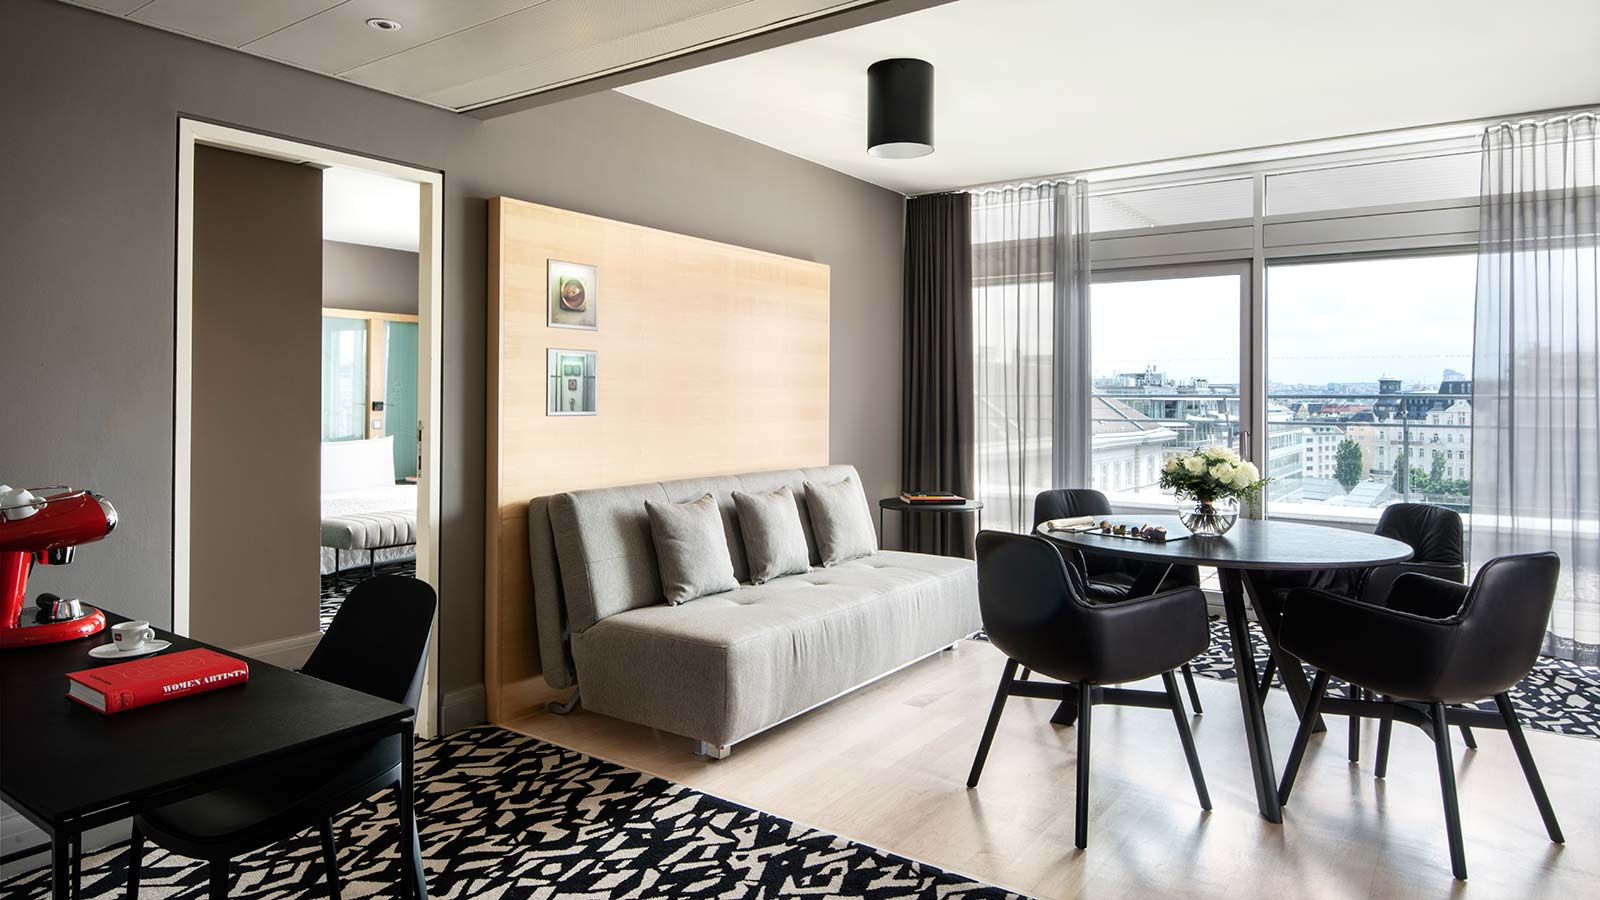 Le Méridien Vienna - Suites in Vienna - Rooftop Terrace Suite - Spacious living room